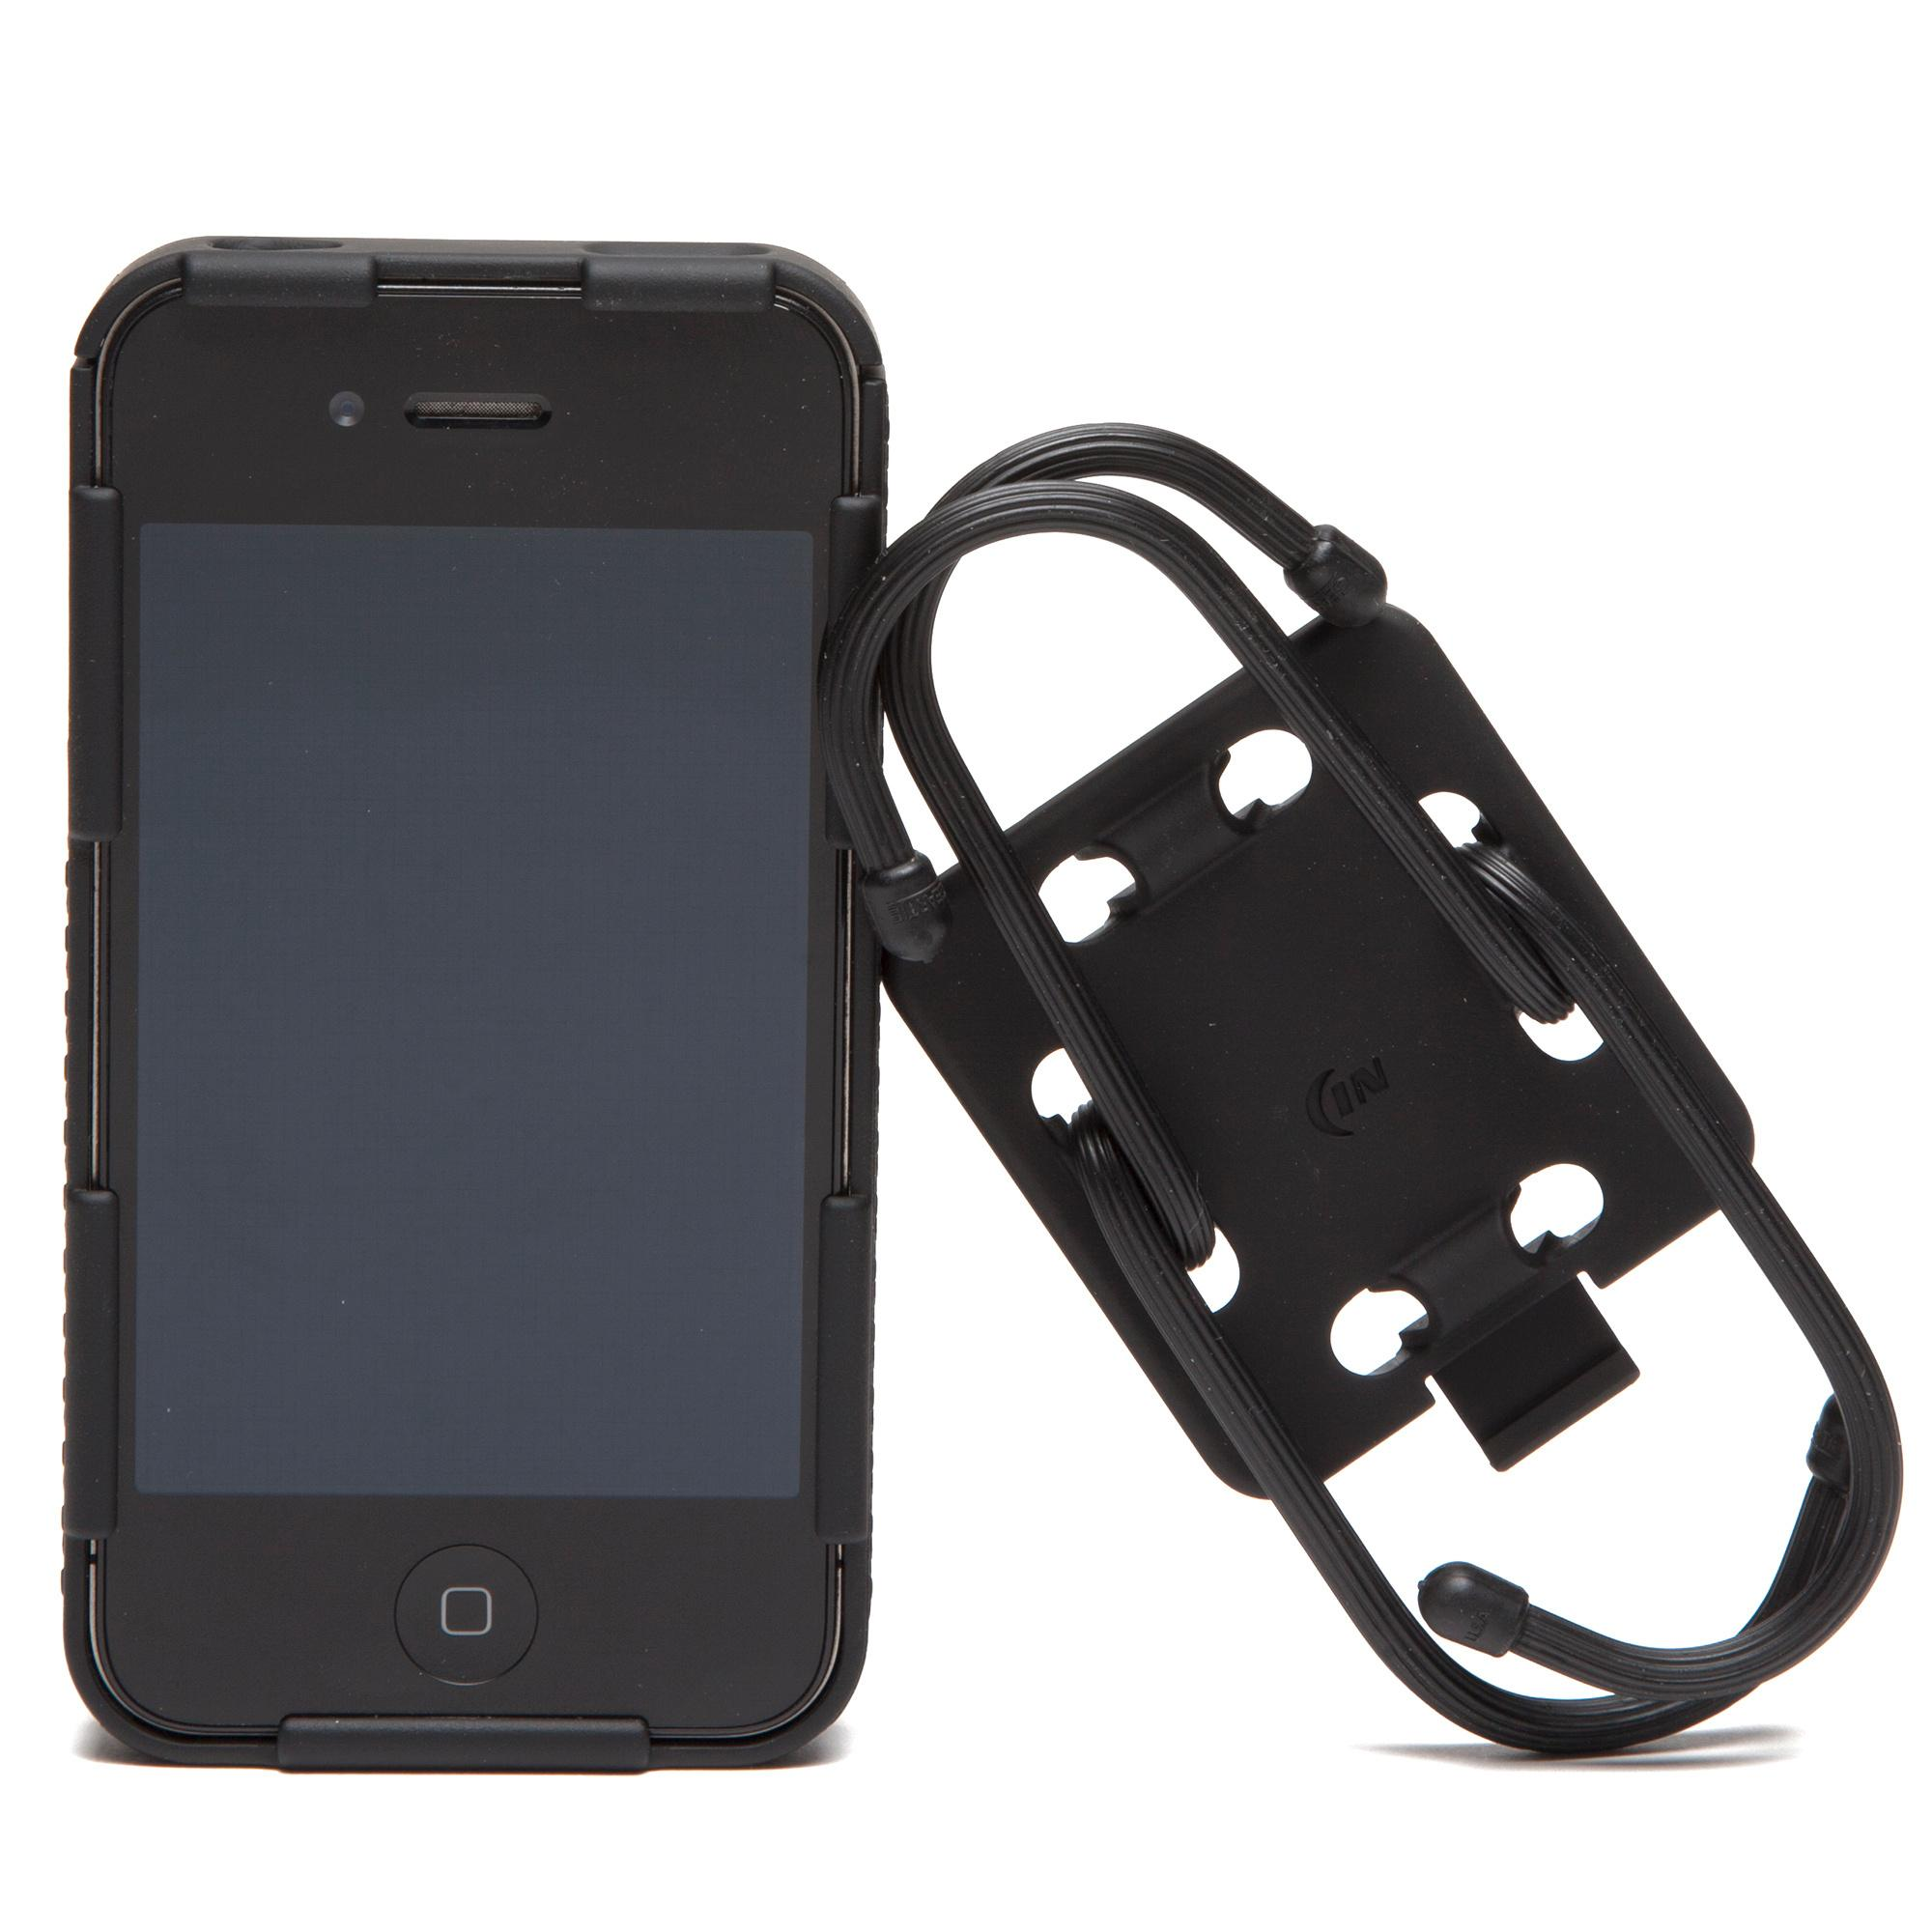 Niteize Connect Case and Mobile Mount, Black